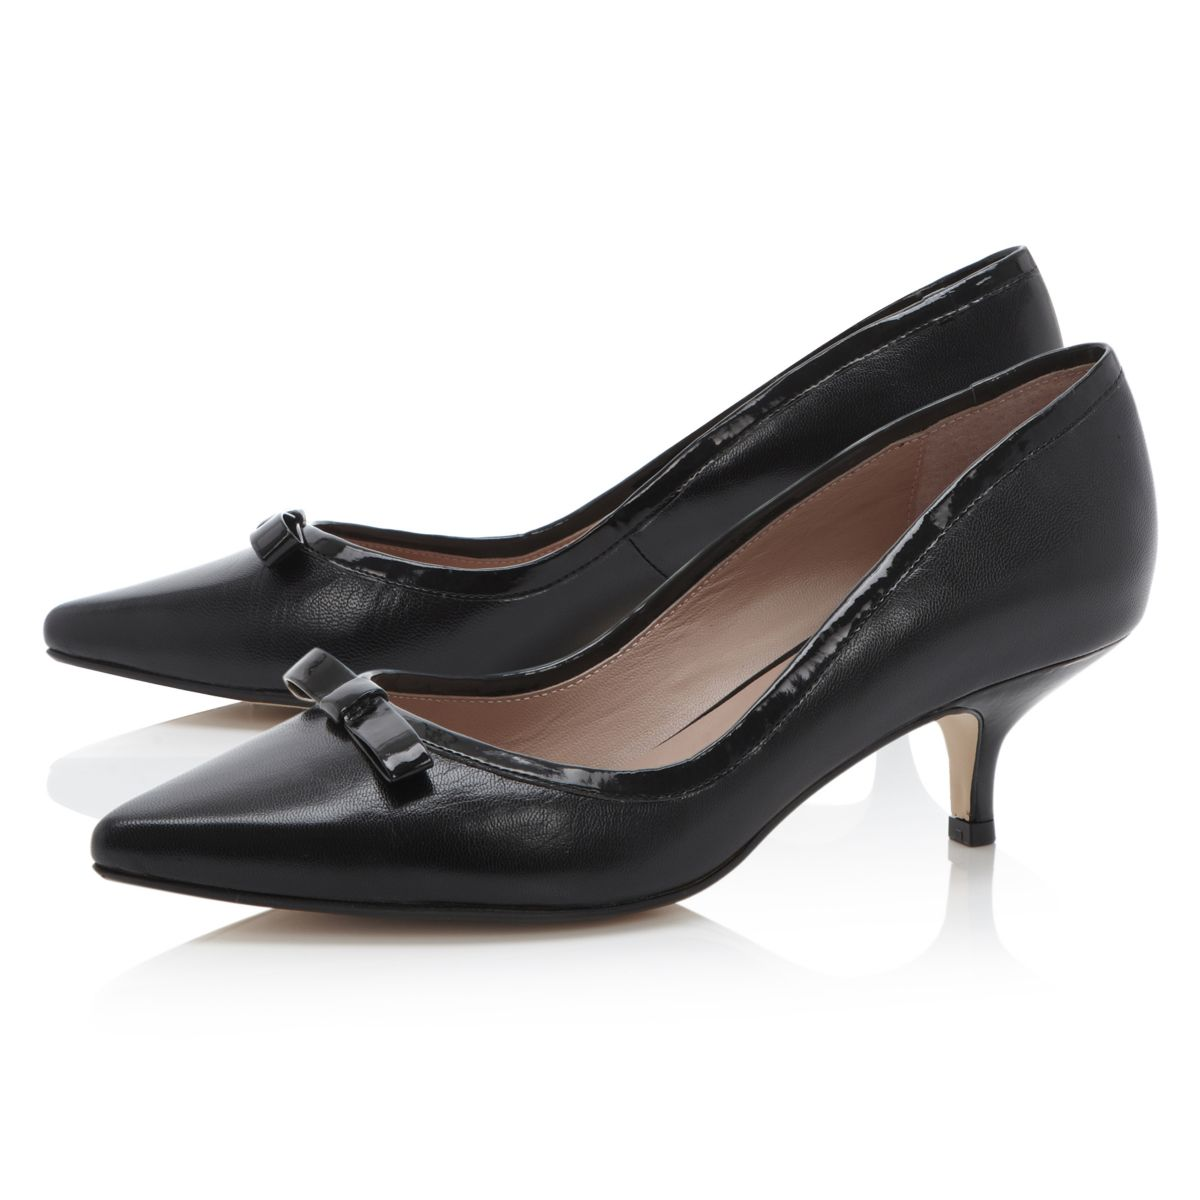 dune ladies aggie damen schwarz leder spitze flacher absatz pumps gr 36 42 ebay. Black Bedroom Furniture Sets. Home Design Ideas